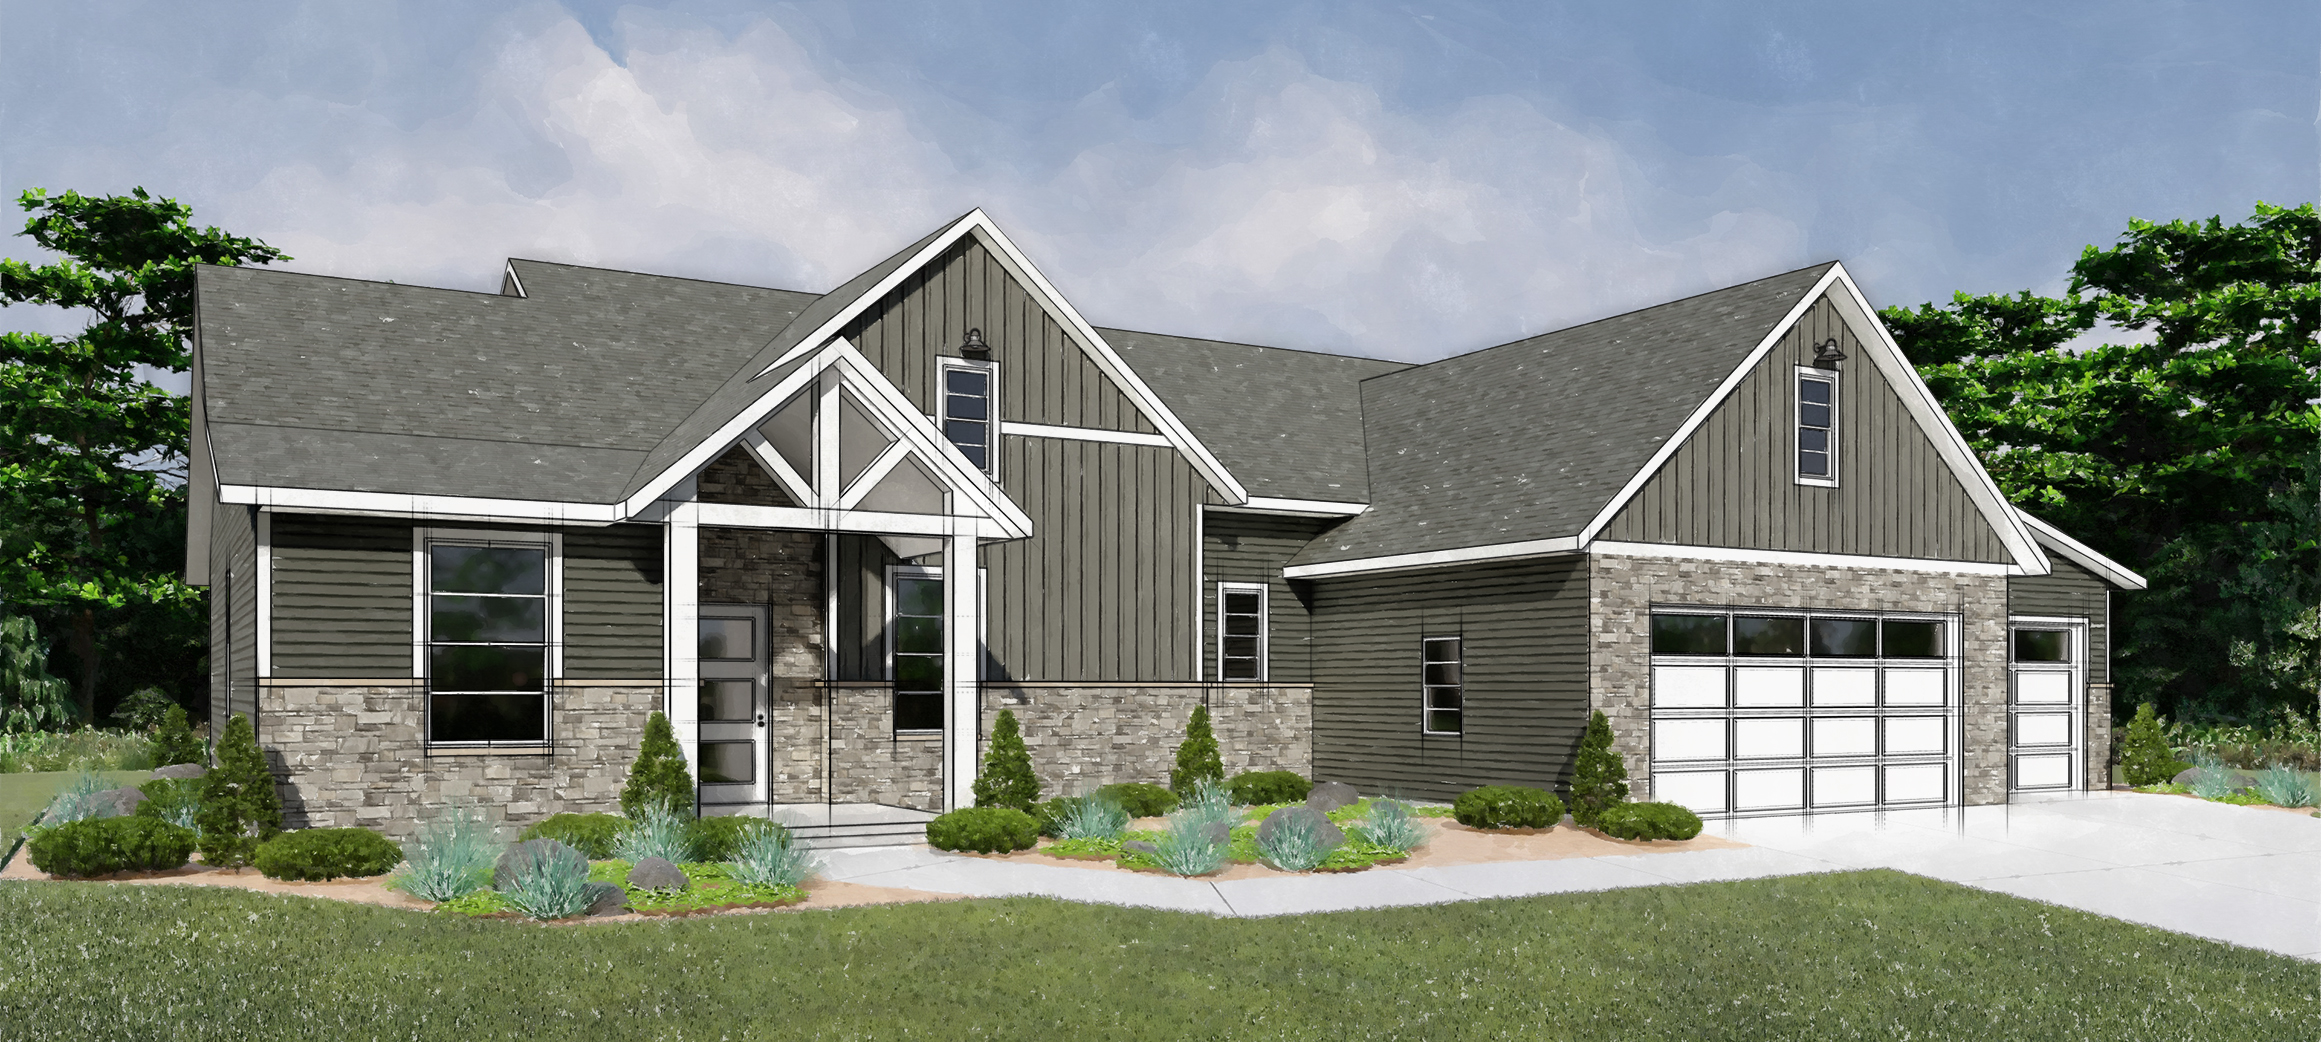 Virtue Home's Marcello rendering